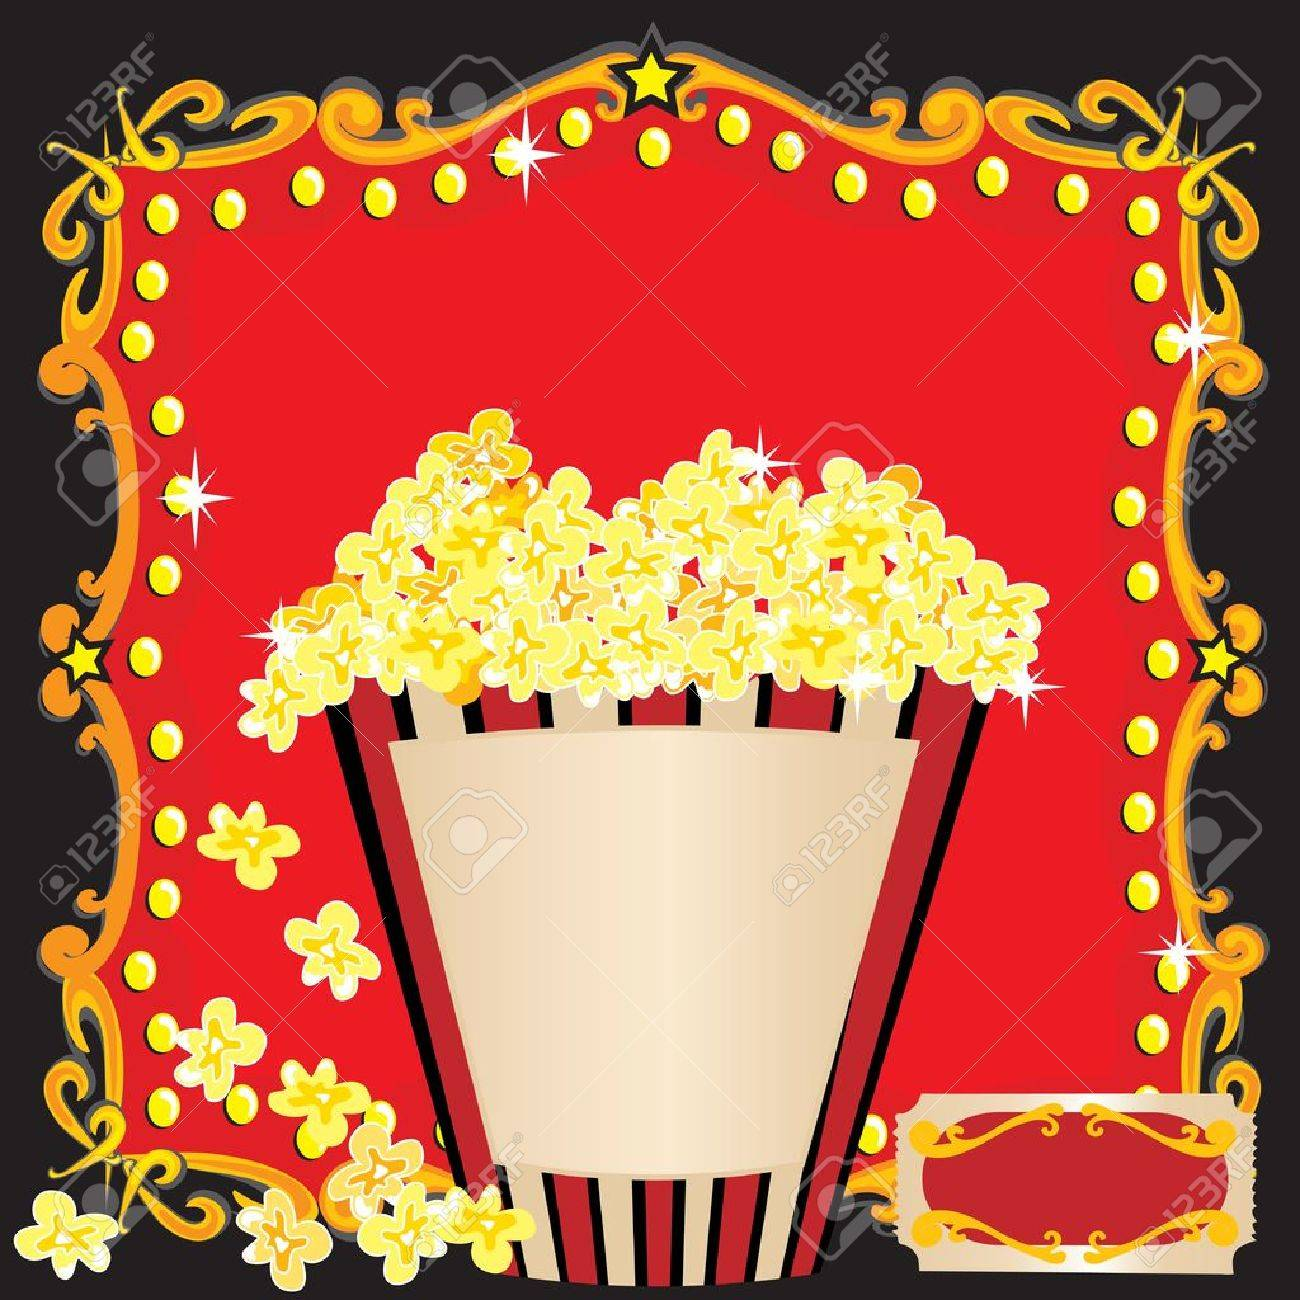 Popcorn And A Movie Birthday Party Invitation Royalty Free Cliparts